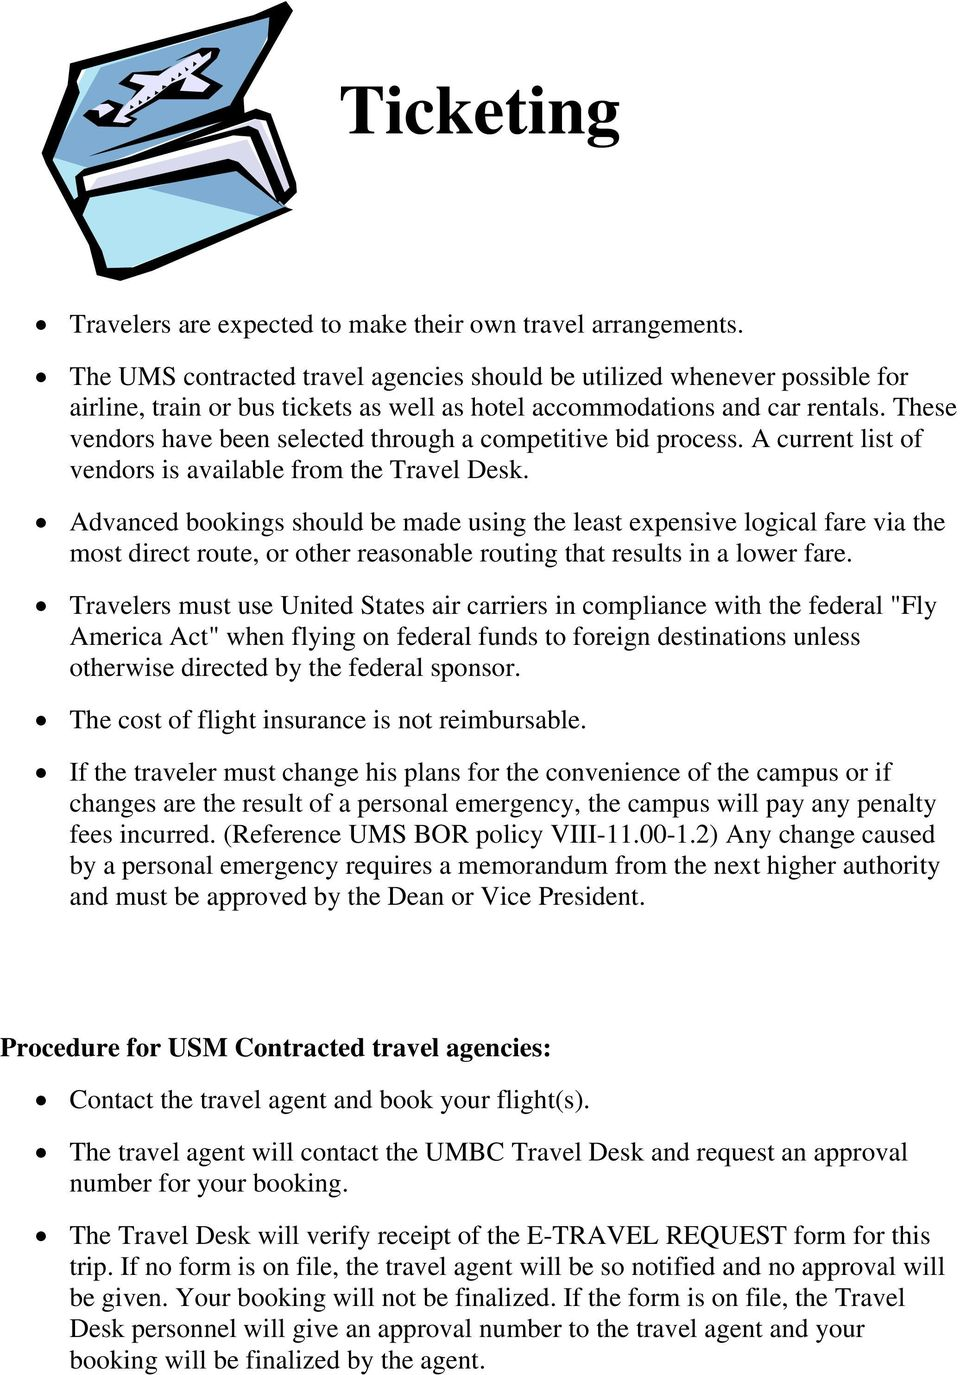 UMBC TRAVEL POLICY AND PROCEDURES - PDF